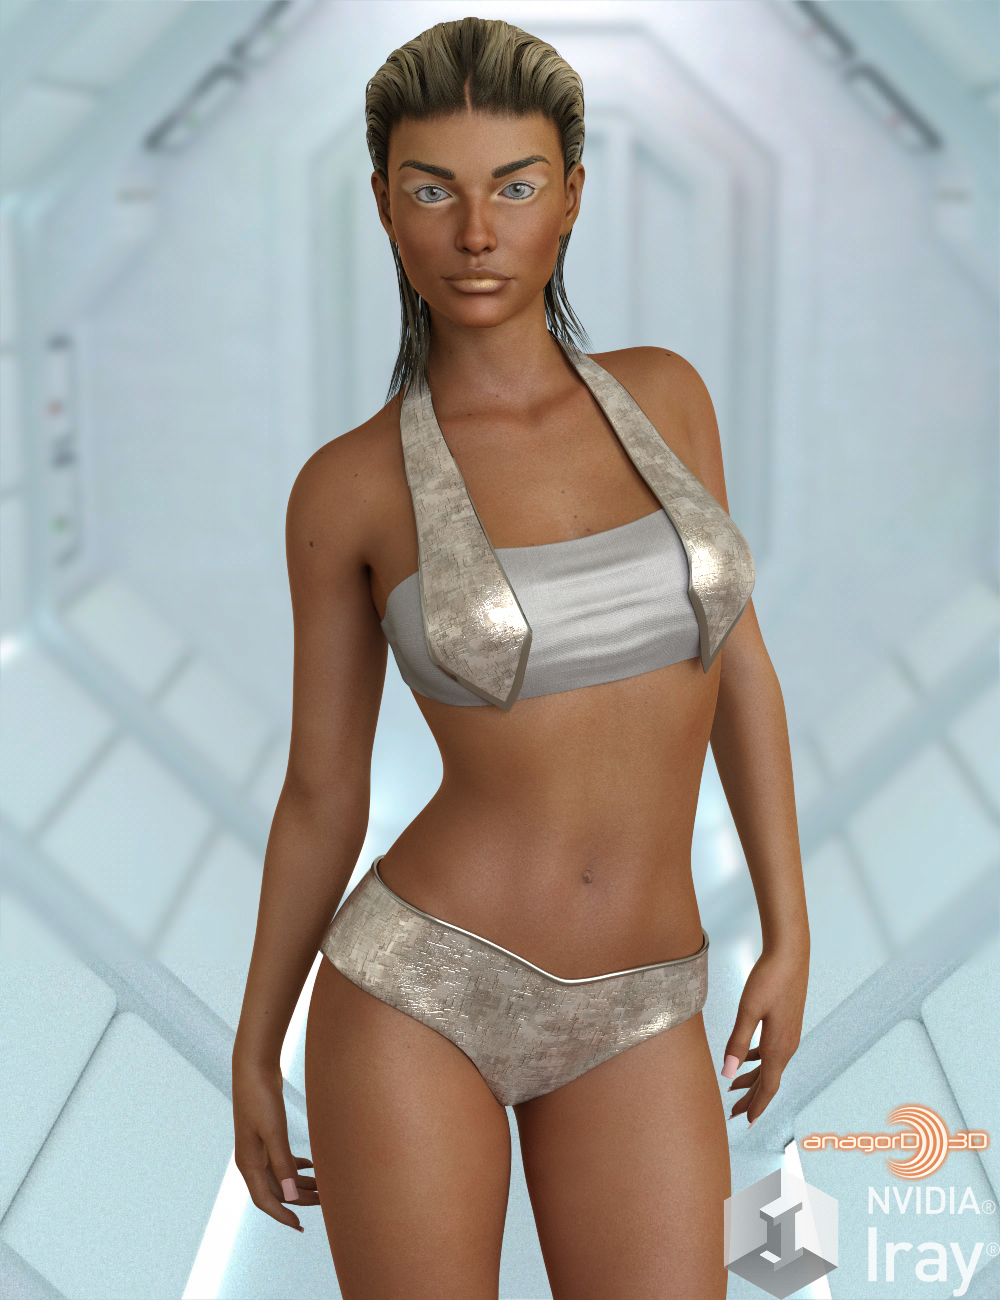 VERSUS - Future Swimwear 9 for G3F and G8F